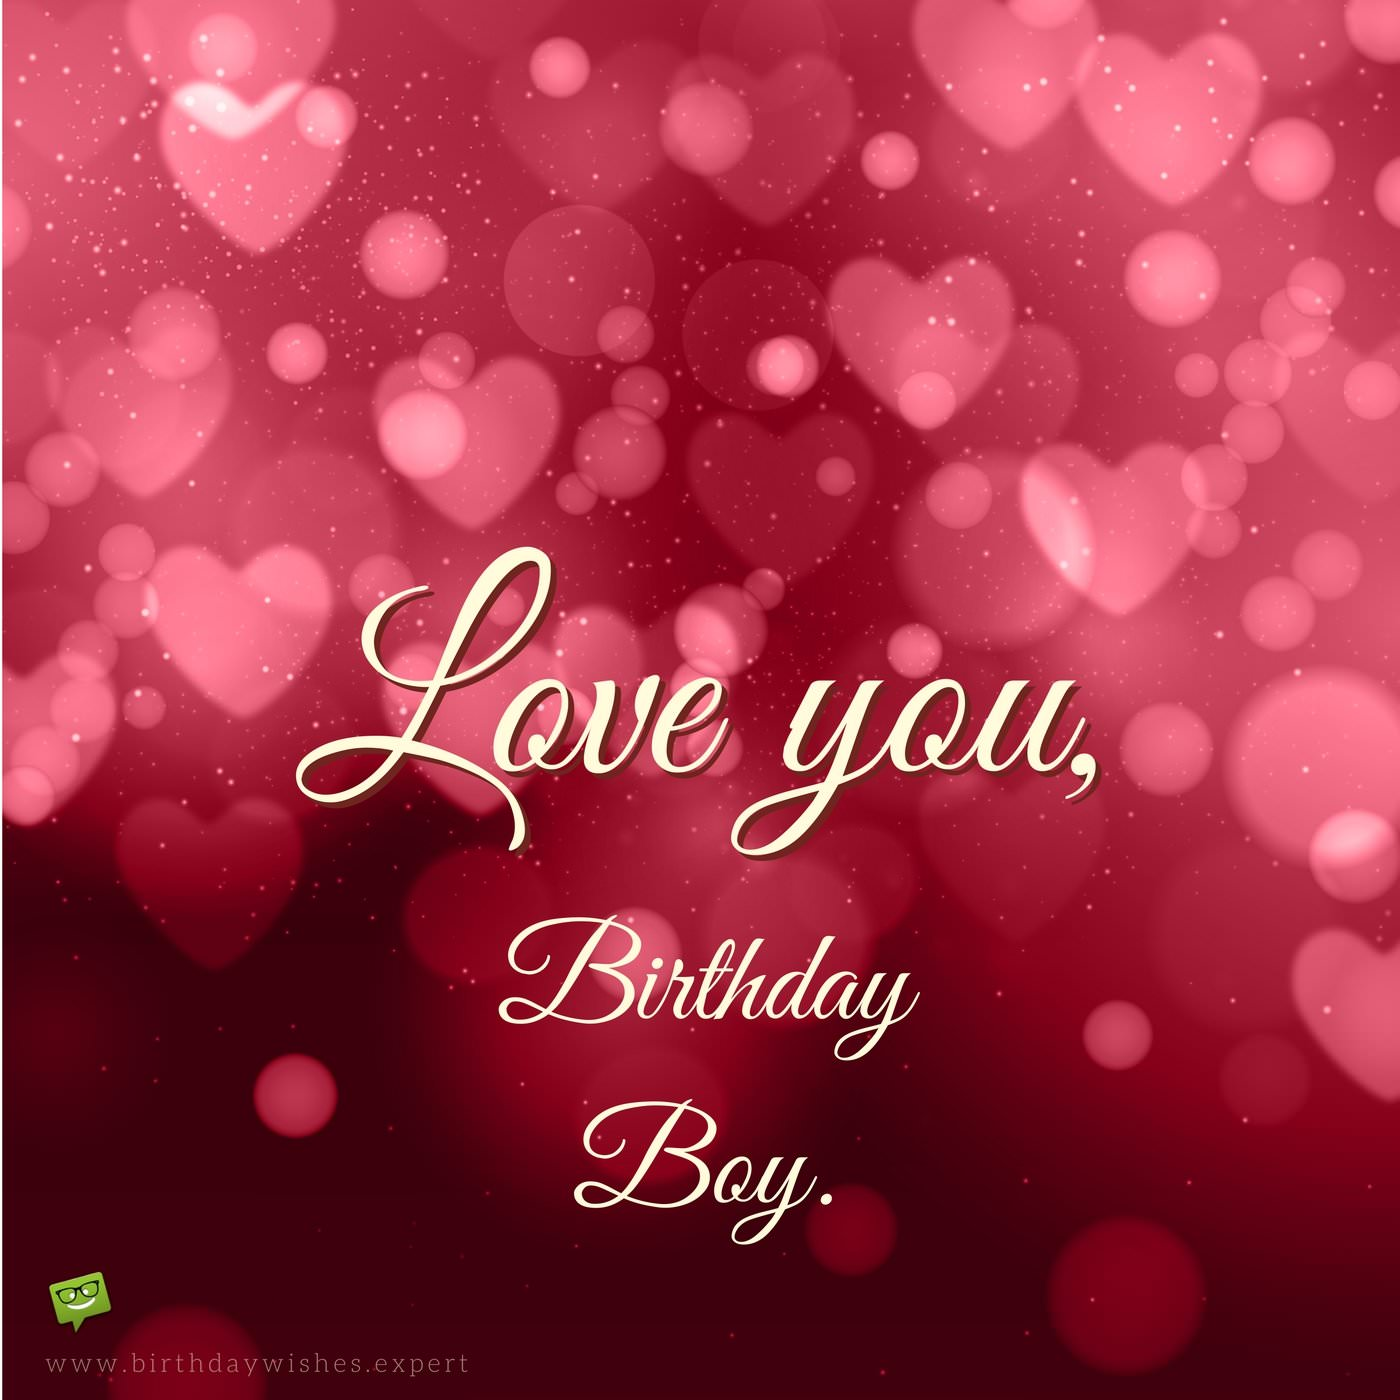 sweet birthday card messages for boyfriend ; Birthday-wish-for-boyfriend-on-background-with-red-hearts